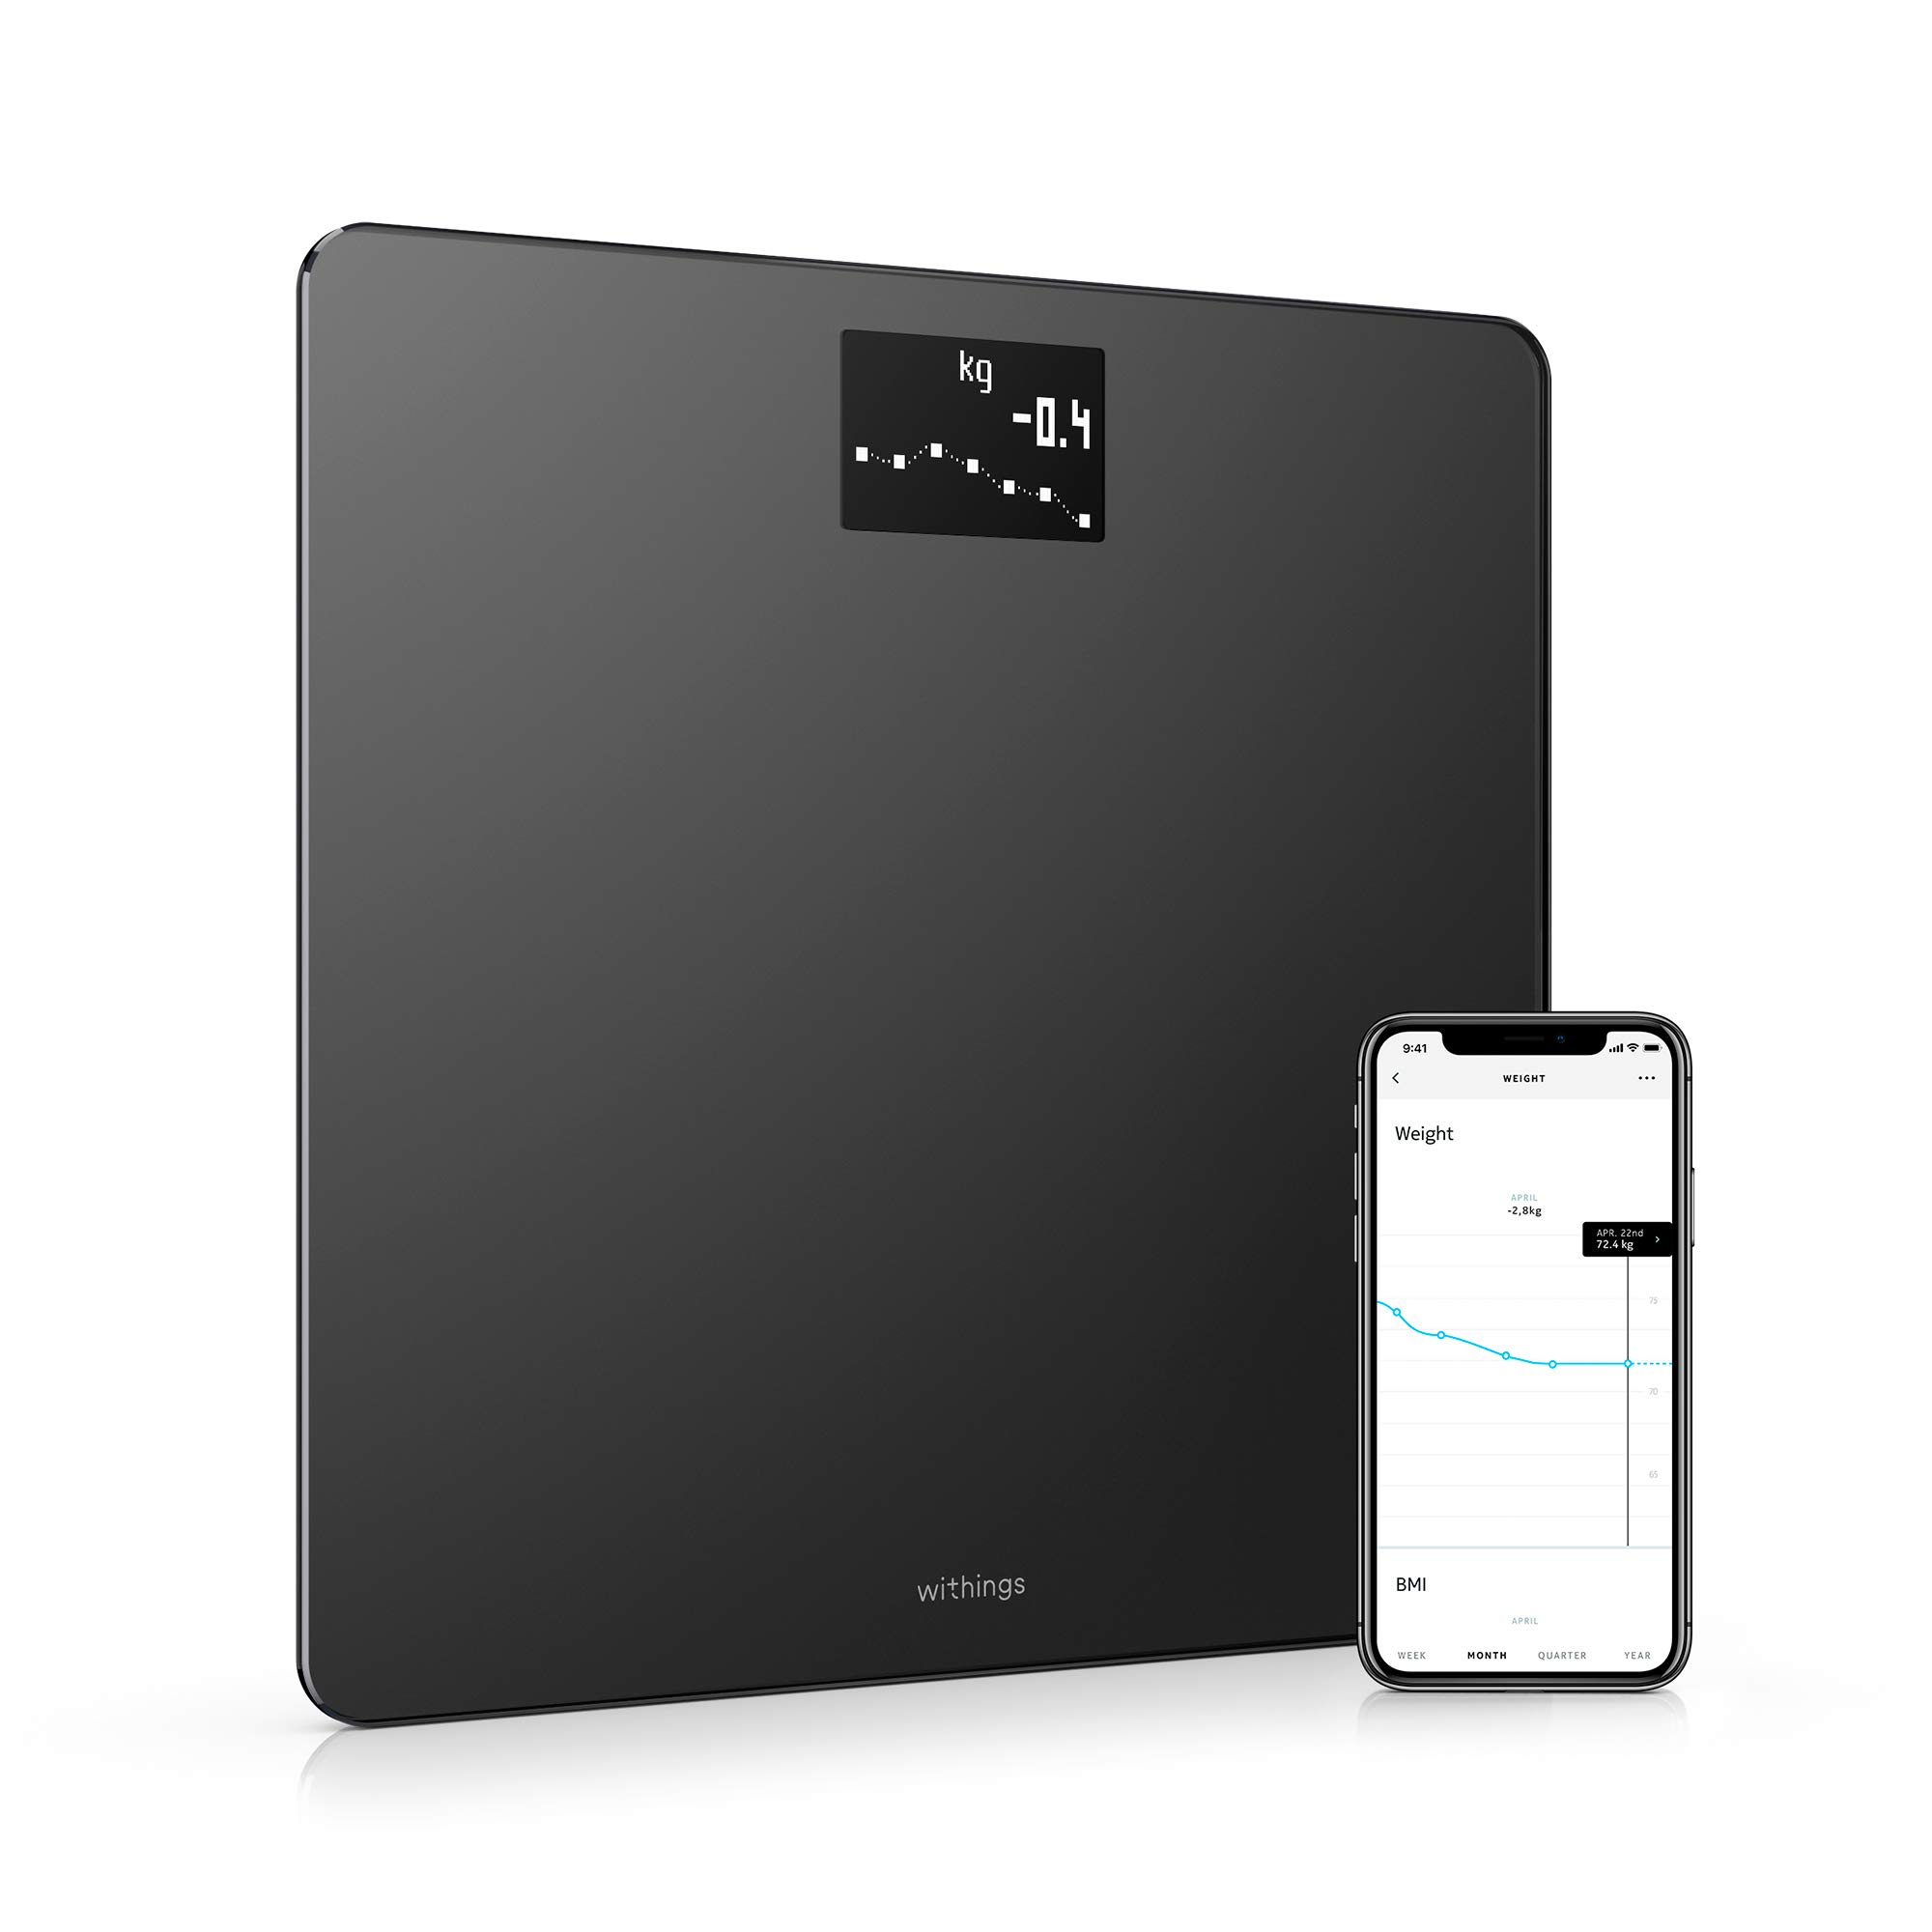 Withings Body - Smart Weight & BMI Wi-Fi Digital Scale with smartphone app, Black by Withings